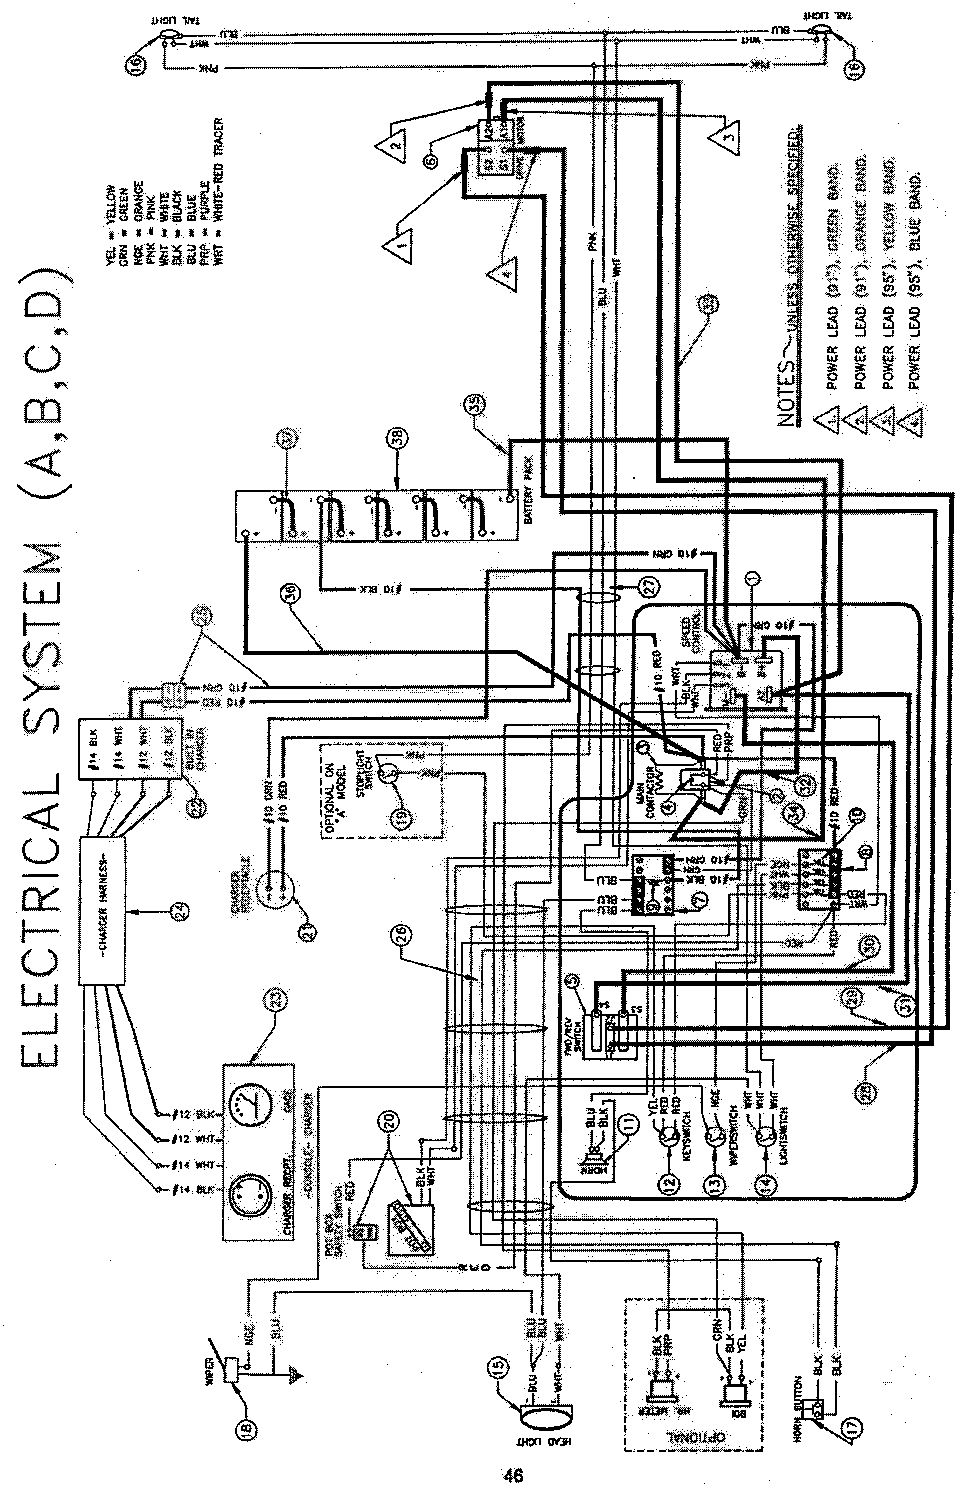 Carry All Club Car Carts Wiring Diagrams on wiring diagram for 1985 club car